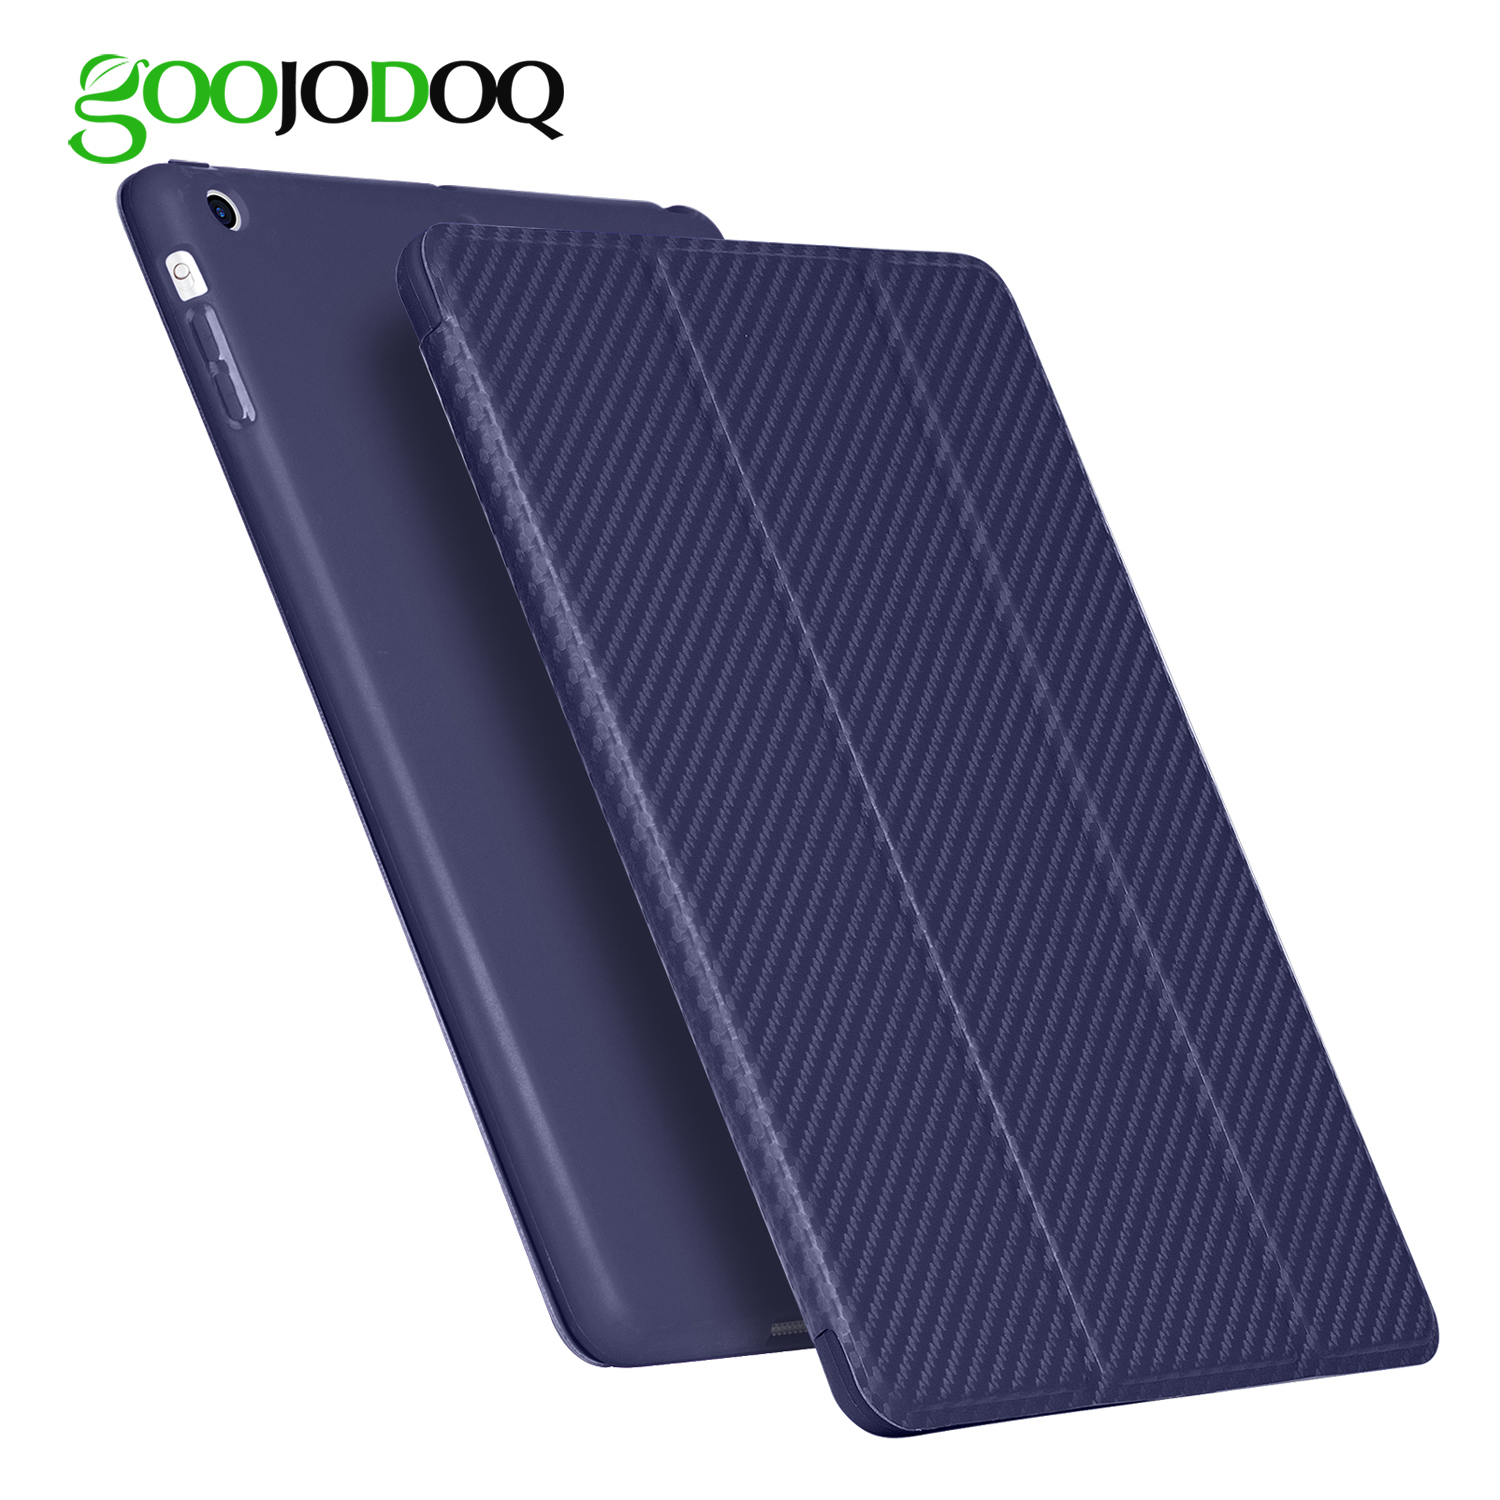 Custodia per iPad Air 2, GOOJODOQ Custodia posteriore in silicone per Apple iPad Air 2 iPad 6 Custodia Smart Cover in pelle PU A1566 A1567 Auto Sleep / Wake